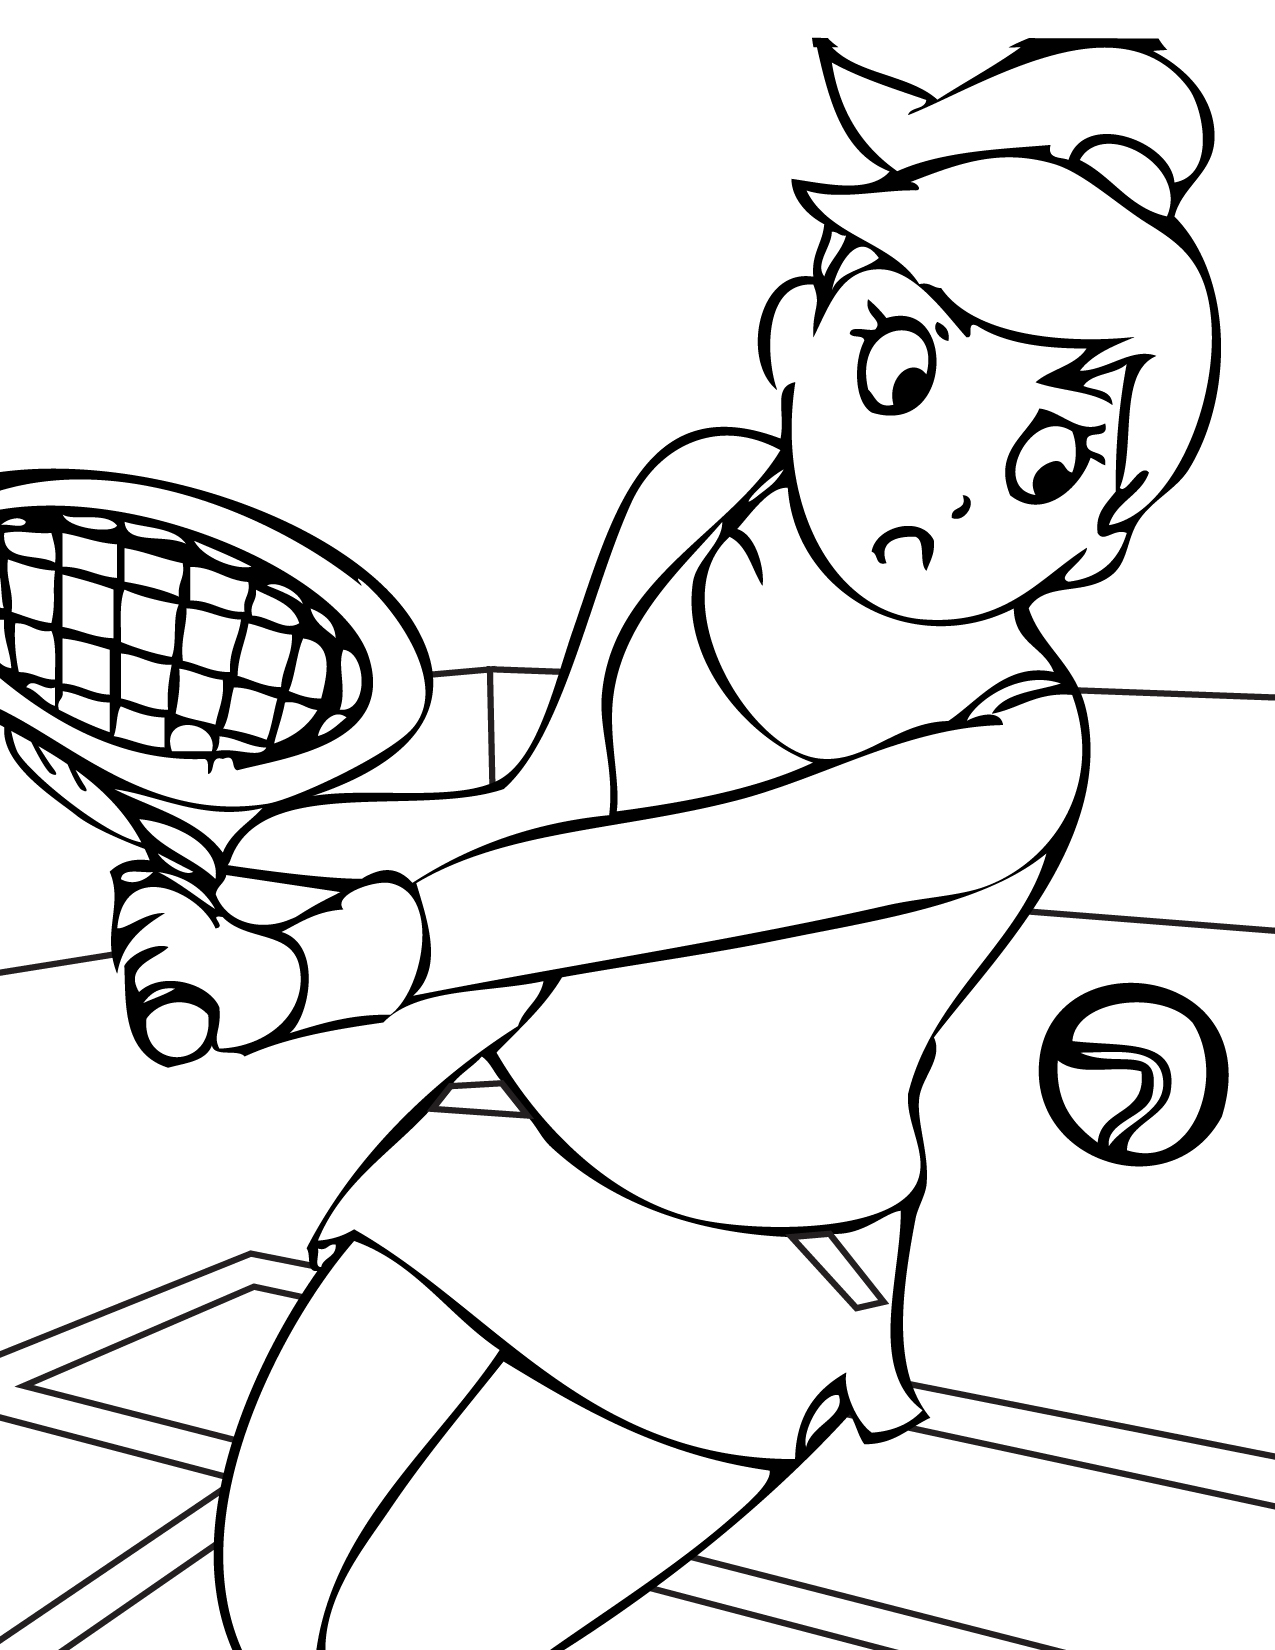 Sports_Coloring_Pages_For_Kindergarten_01